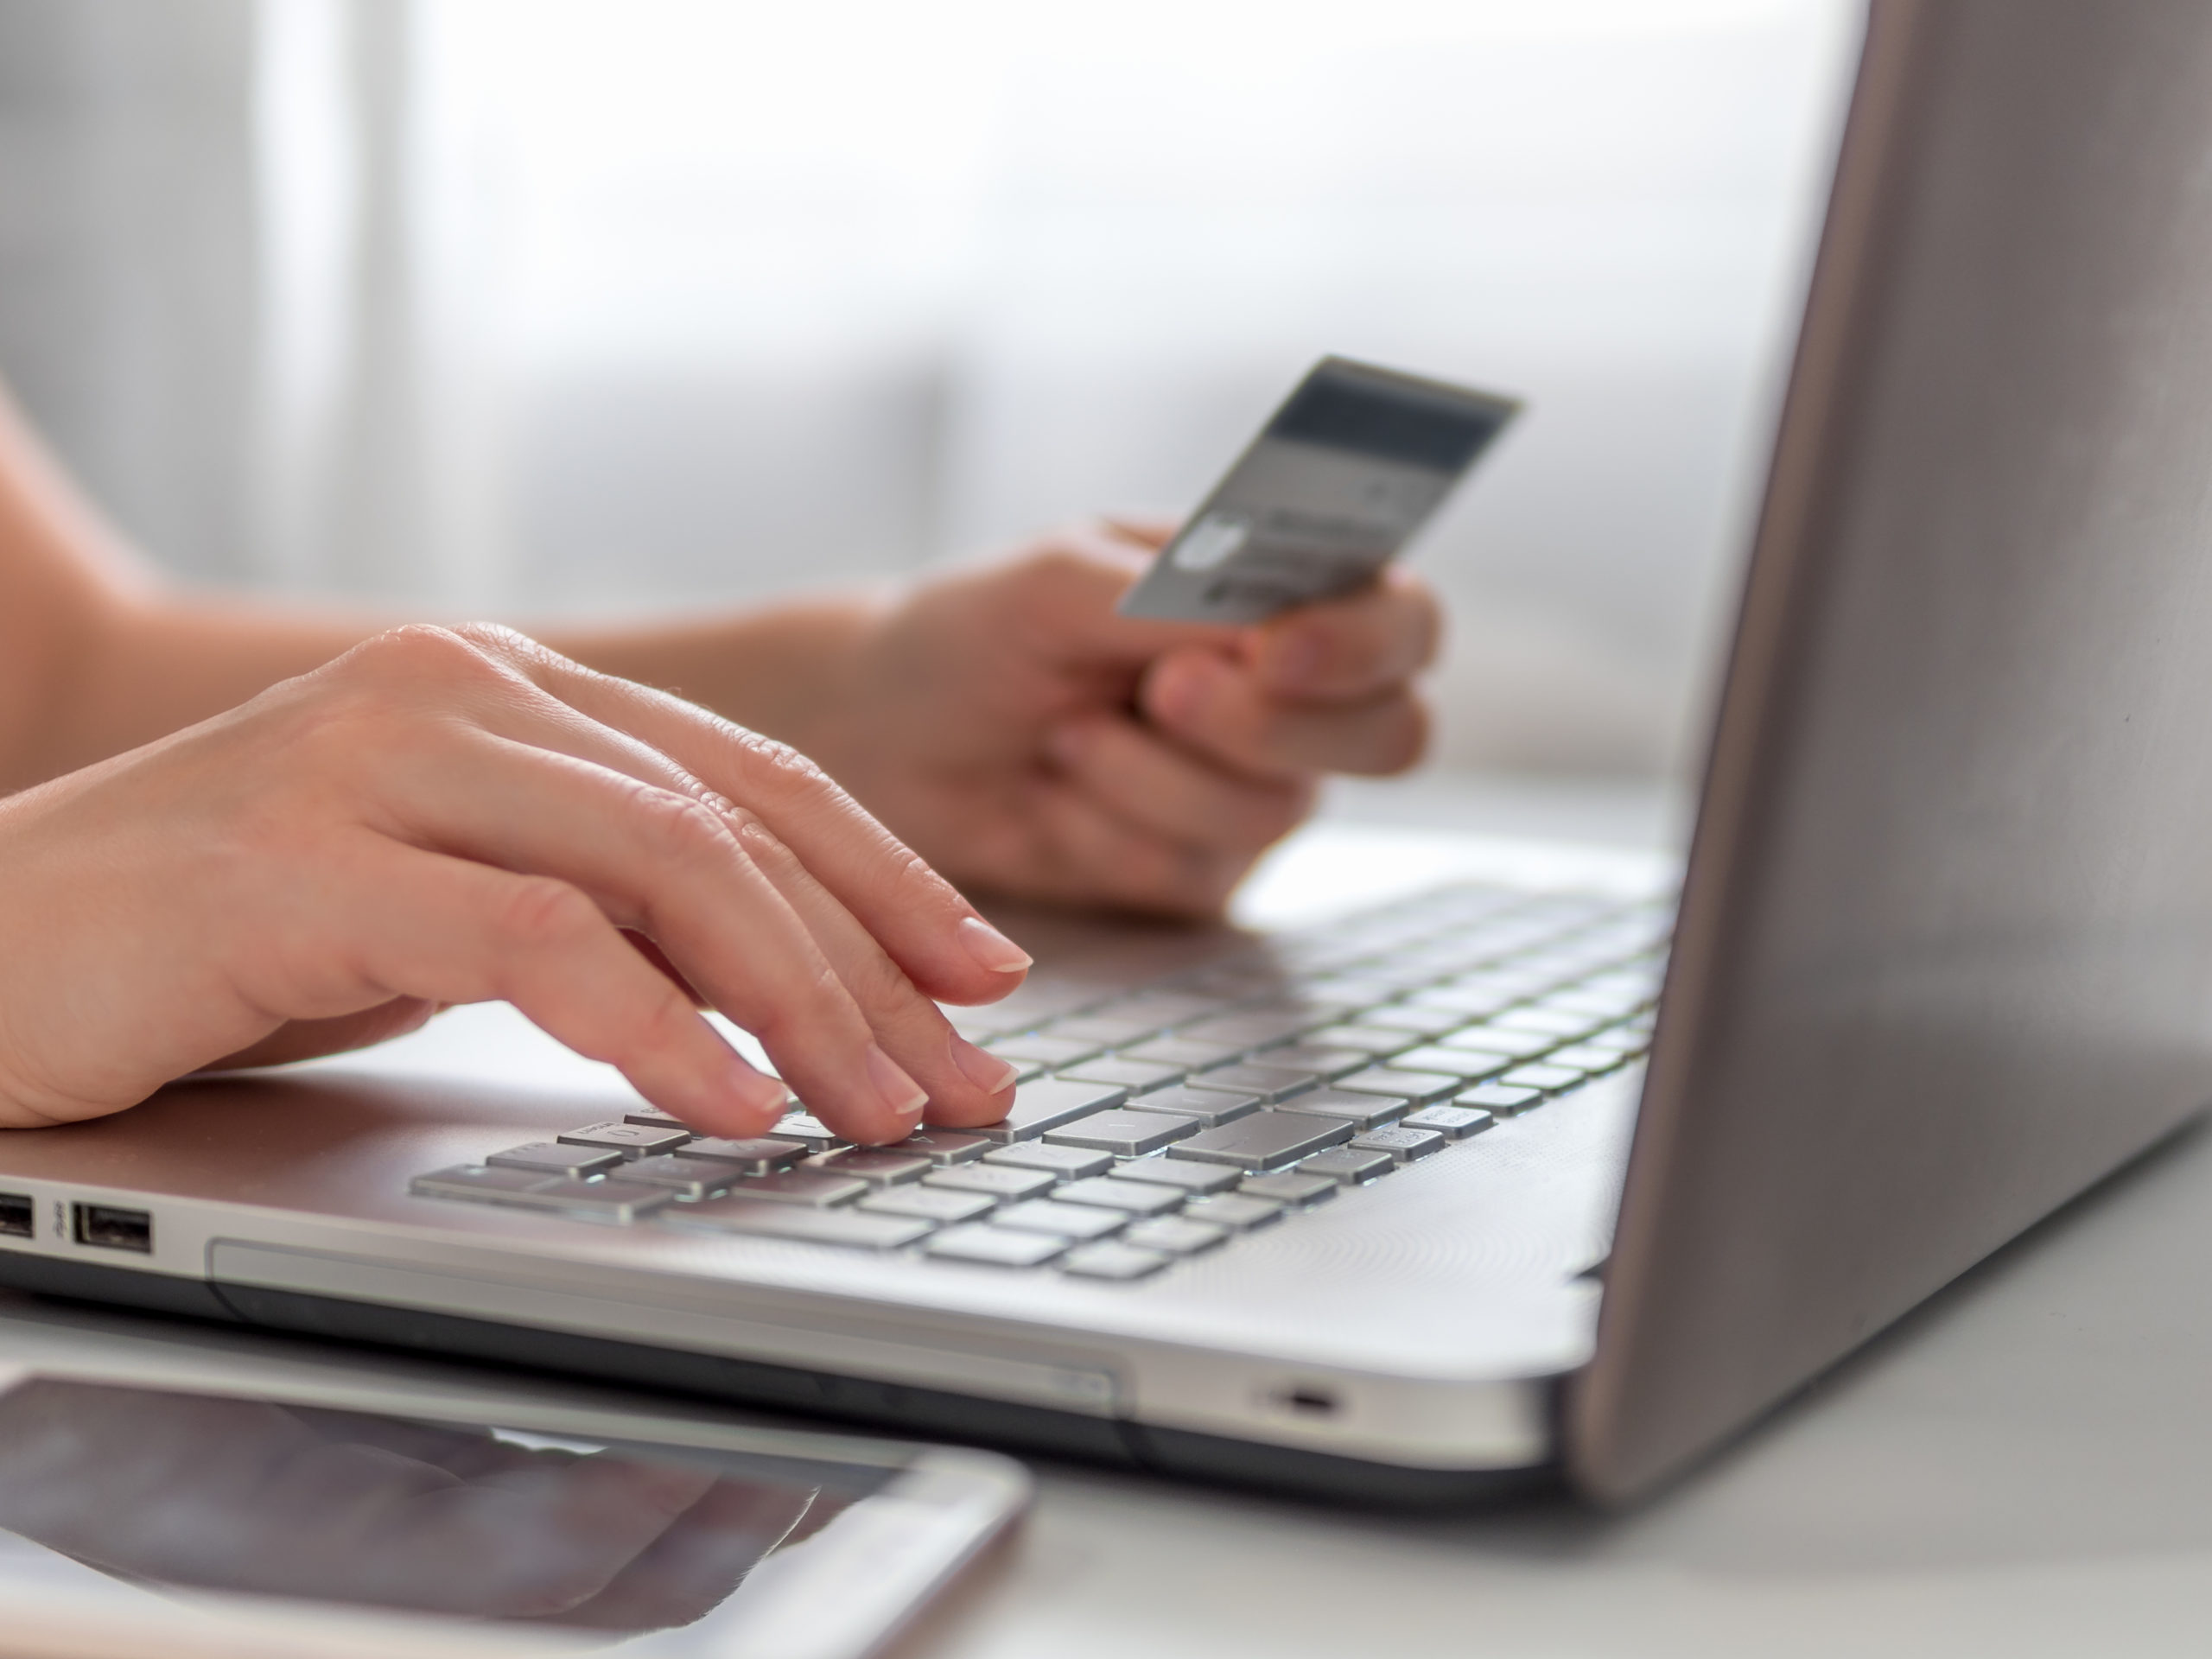 Online shopping concept. Close-up woman's hands holding credit card and using laptop keyboard for online shopping